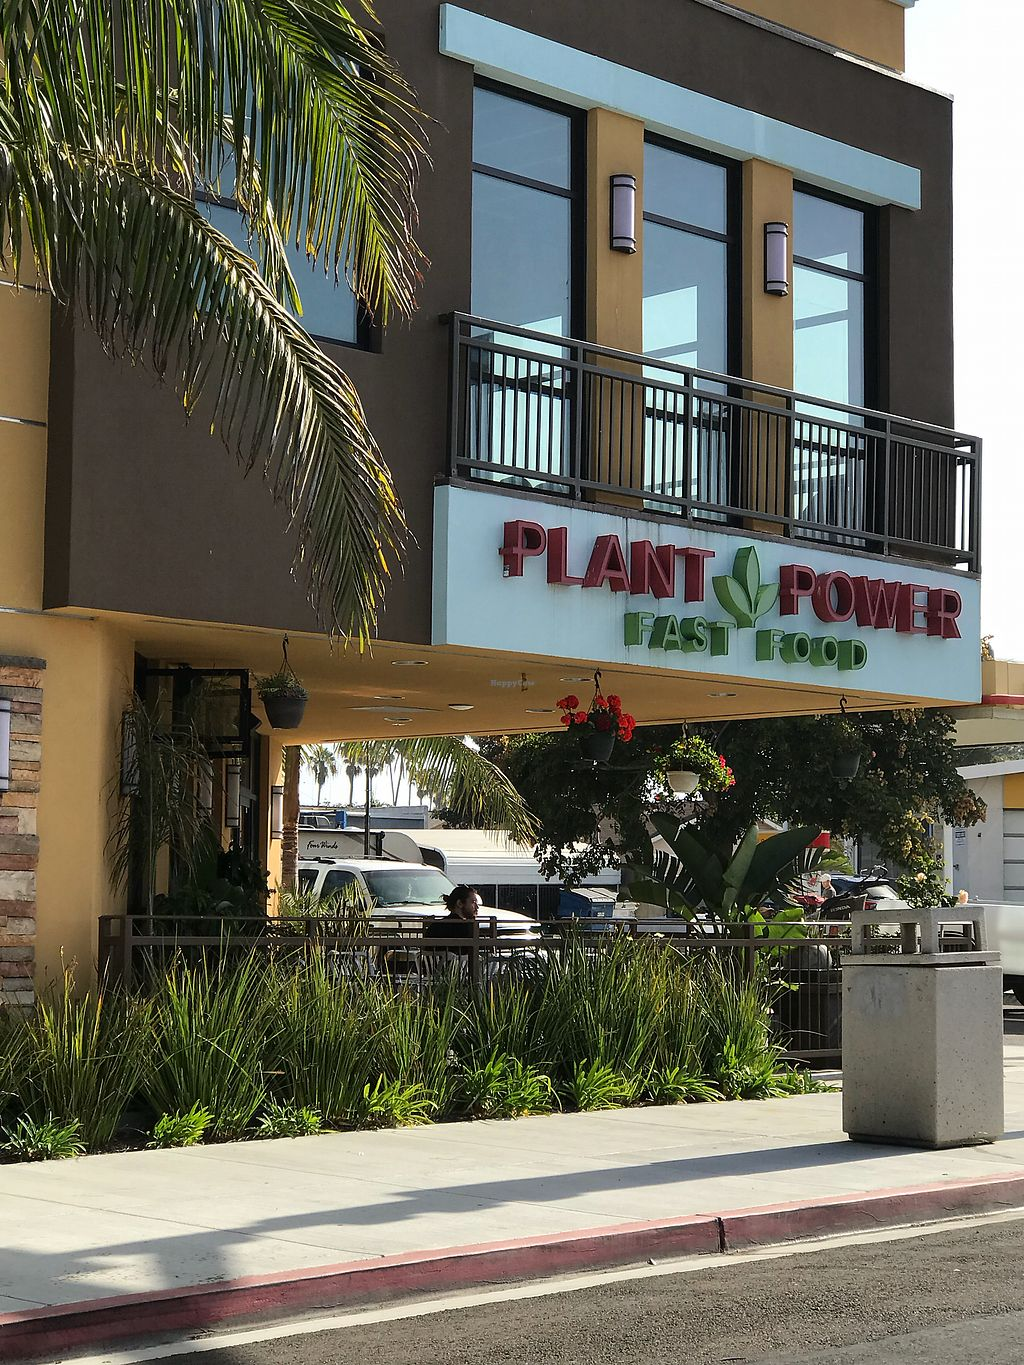 """Photo of Plant Power Fast Food  by <a href=""""/members/profile/SoWo1999"""">SoWo1999</a> <br/>Plant Power Fast Food <br/> October 10, 2017  - <a href='/contact/abuse/image/67395/314015'>Report</a>"""